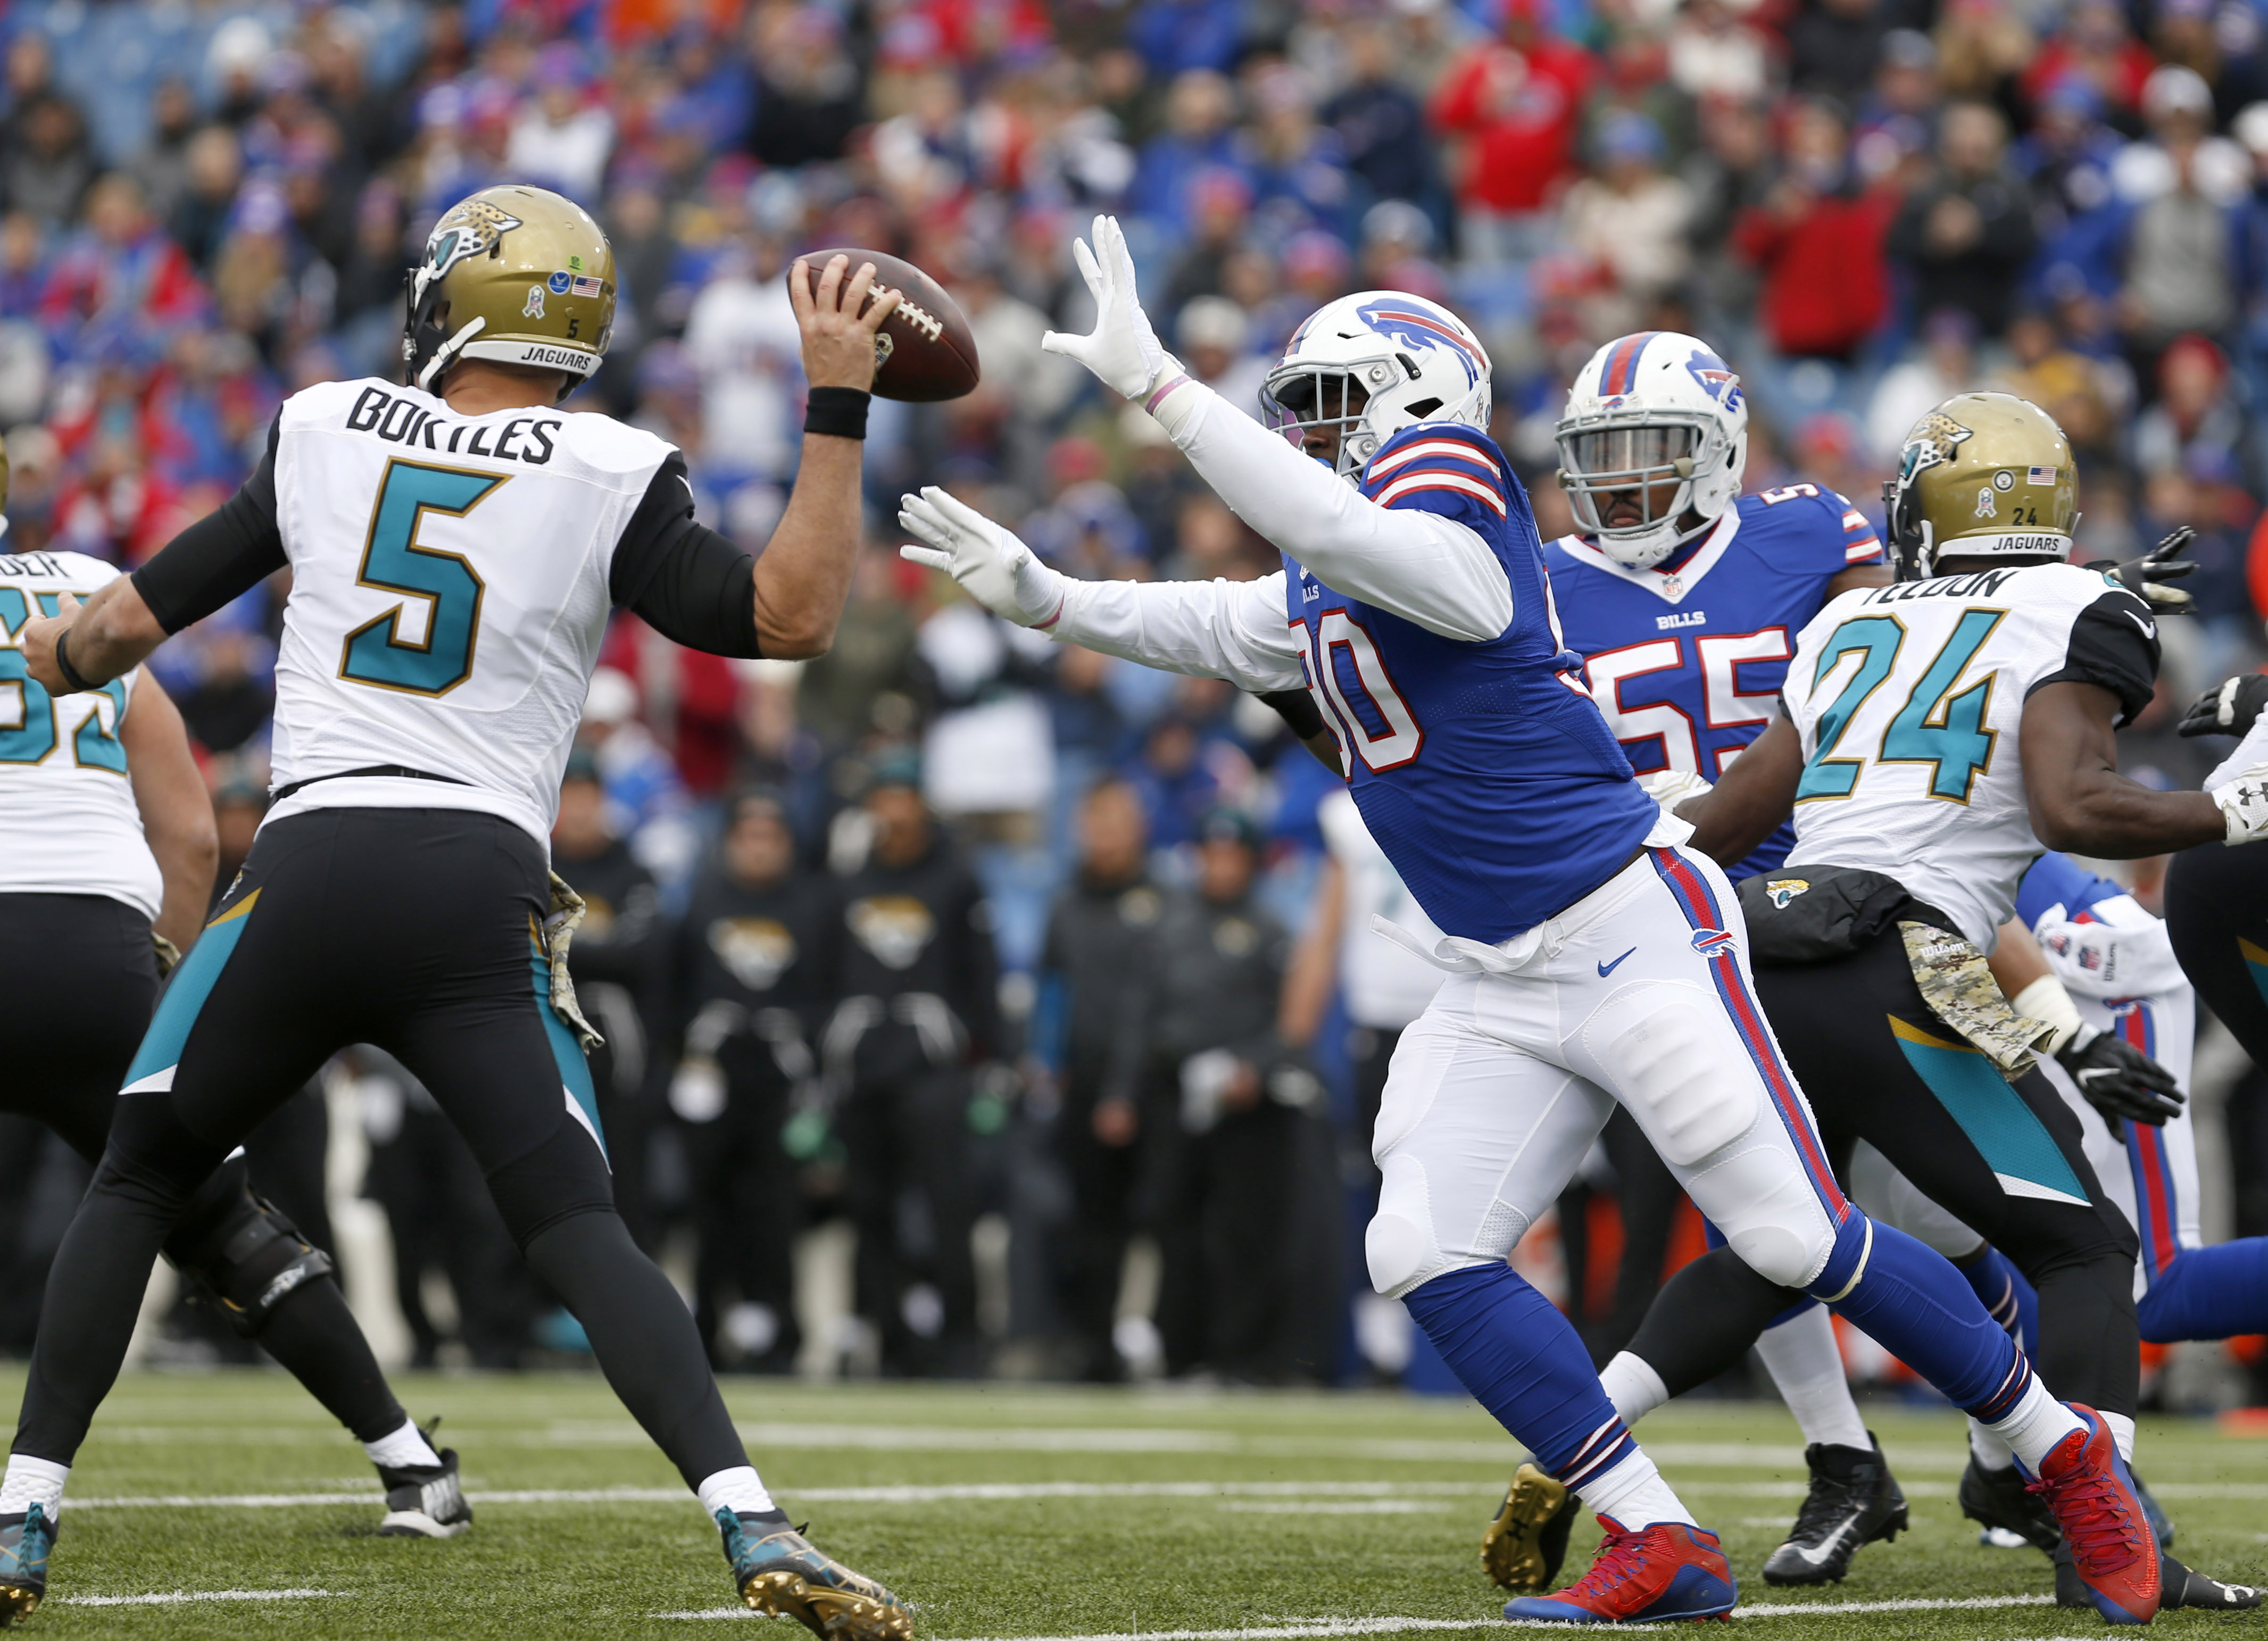 Nov 27, 2016; Orchard Park, NY, USA; Buffalo Bills defensive end Shaq Lawson (90) looks to knock the ball away from Jacksonville Jaguars quarterback Blake Bortles (5) during the first half at New Era Field. Mandatory Credit: Timothy T. Ludwig-USA TODAY Sports